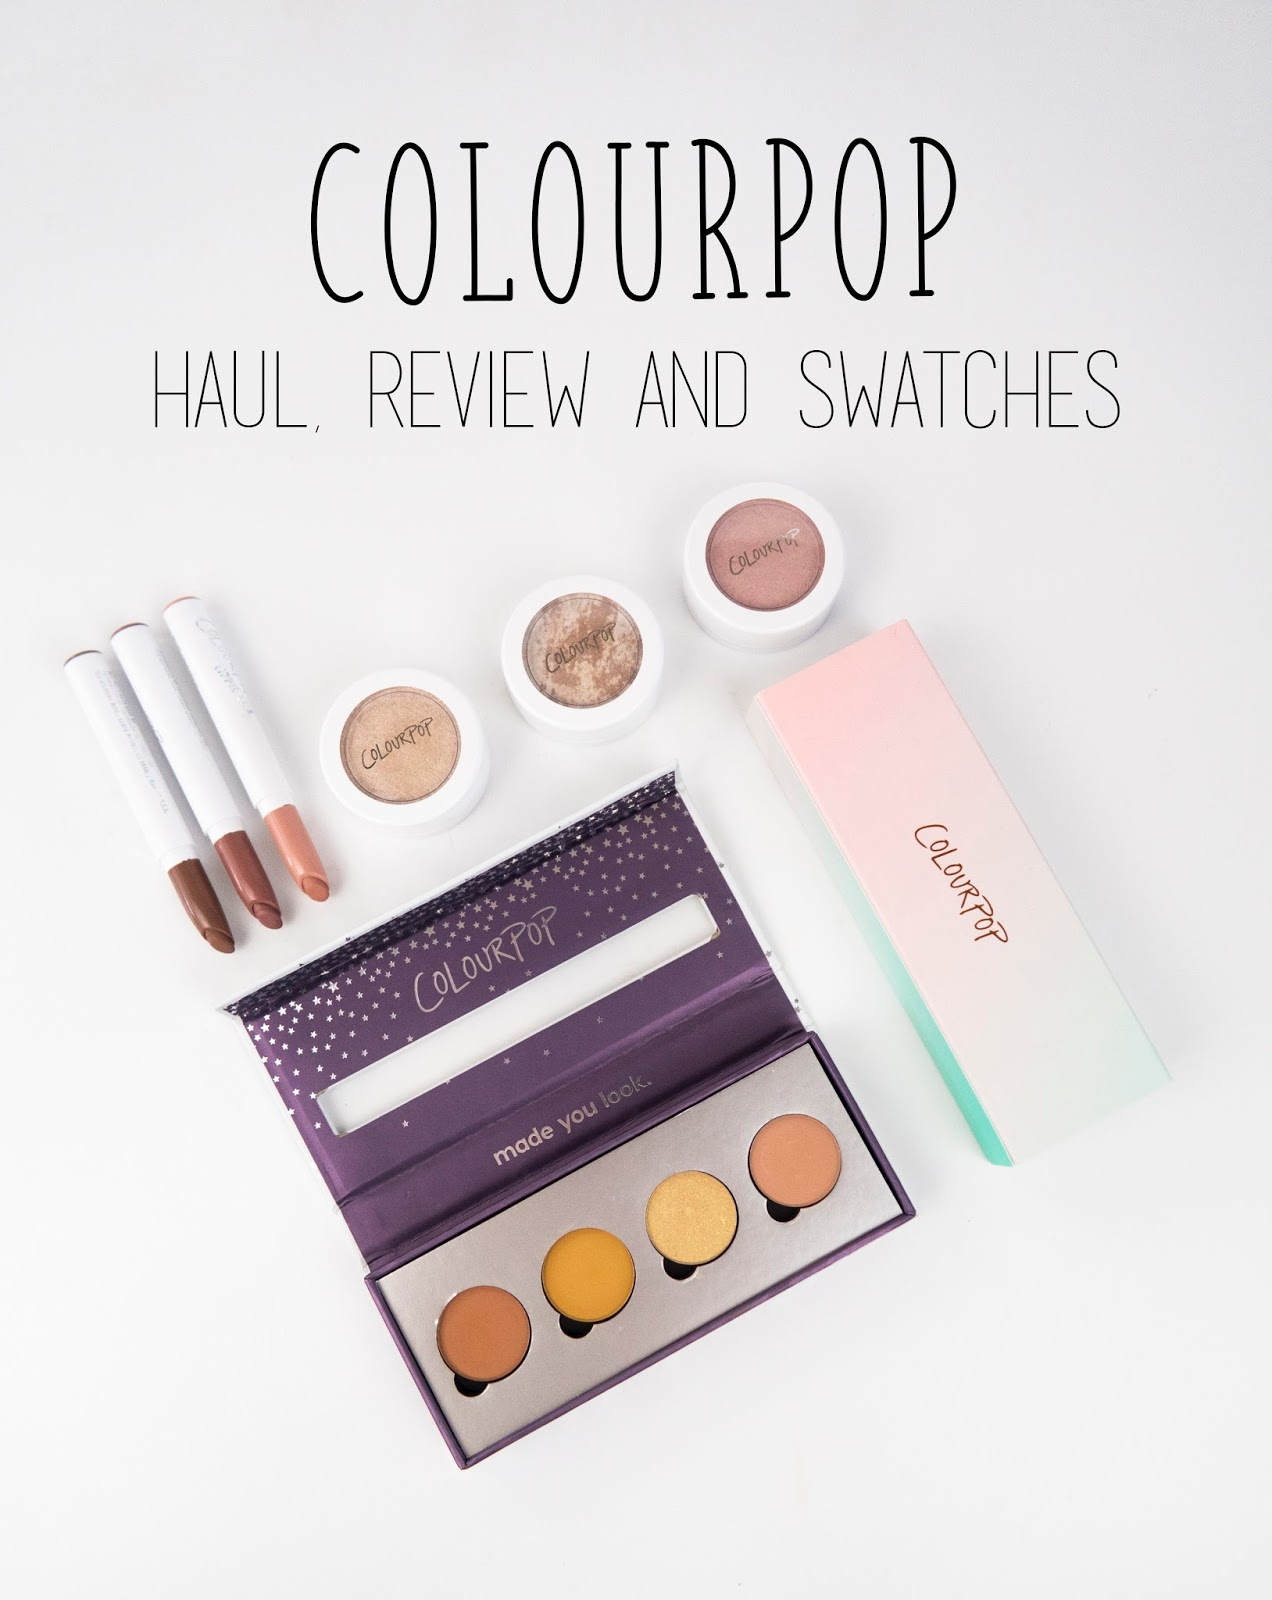 Colourpop Haul, Review And Swatches